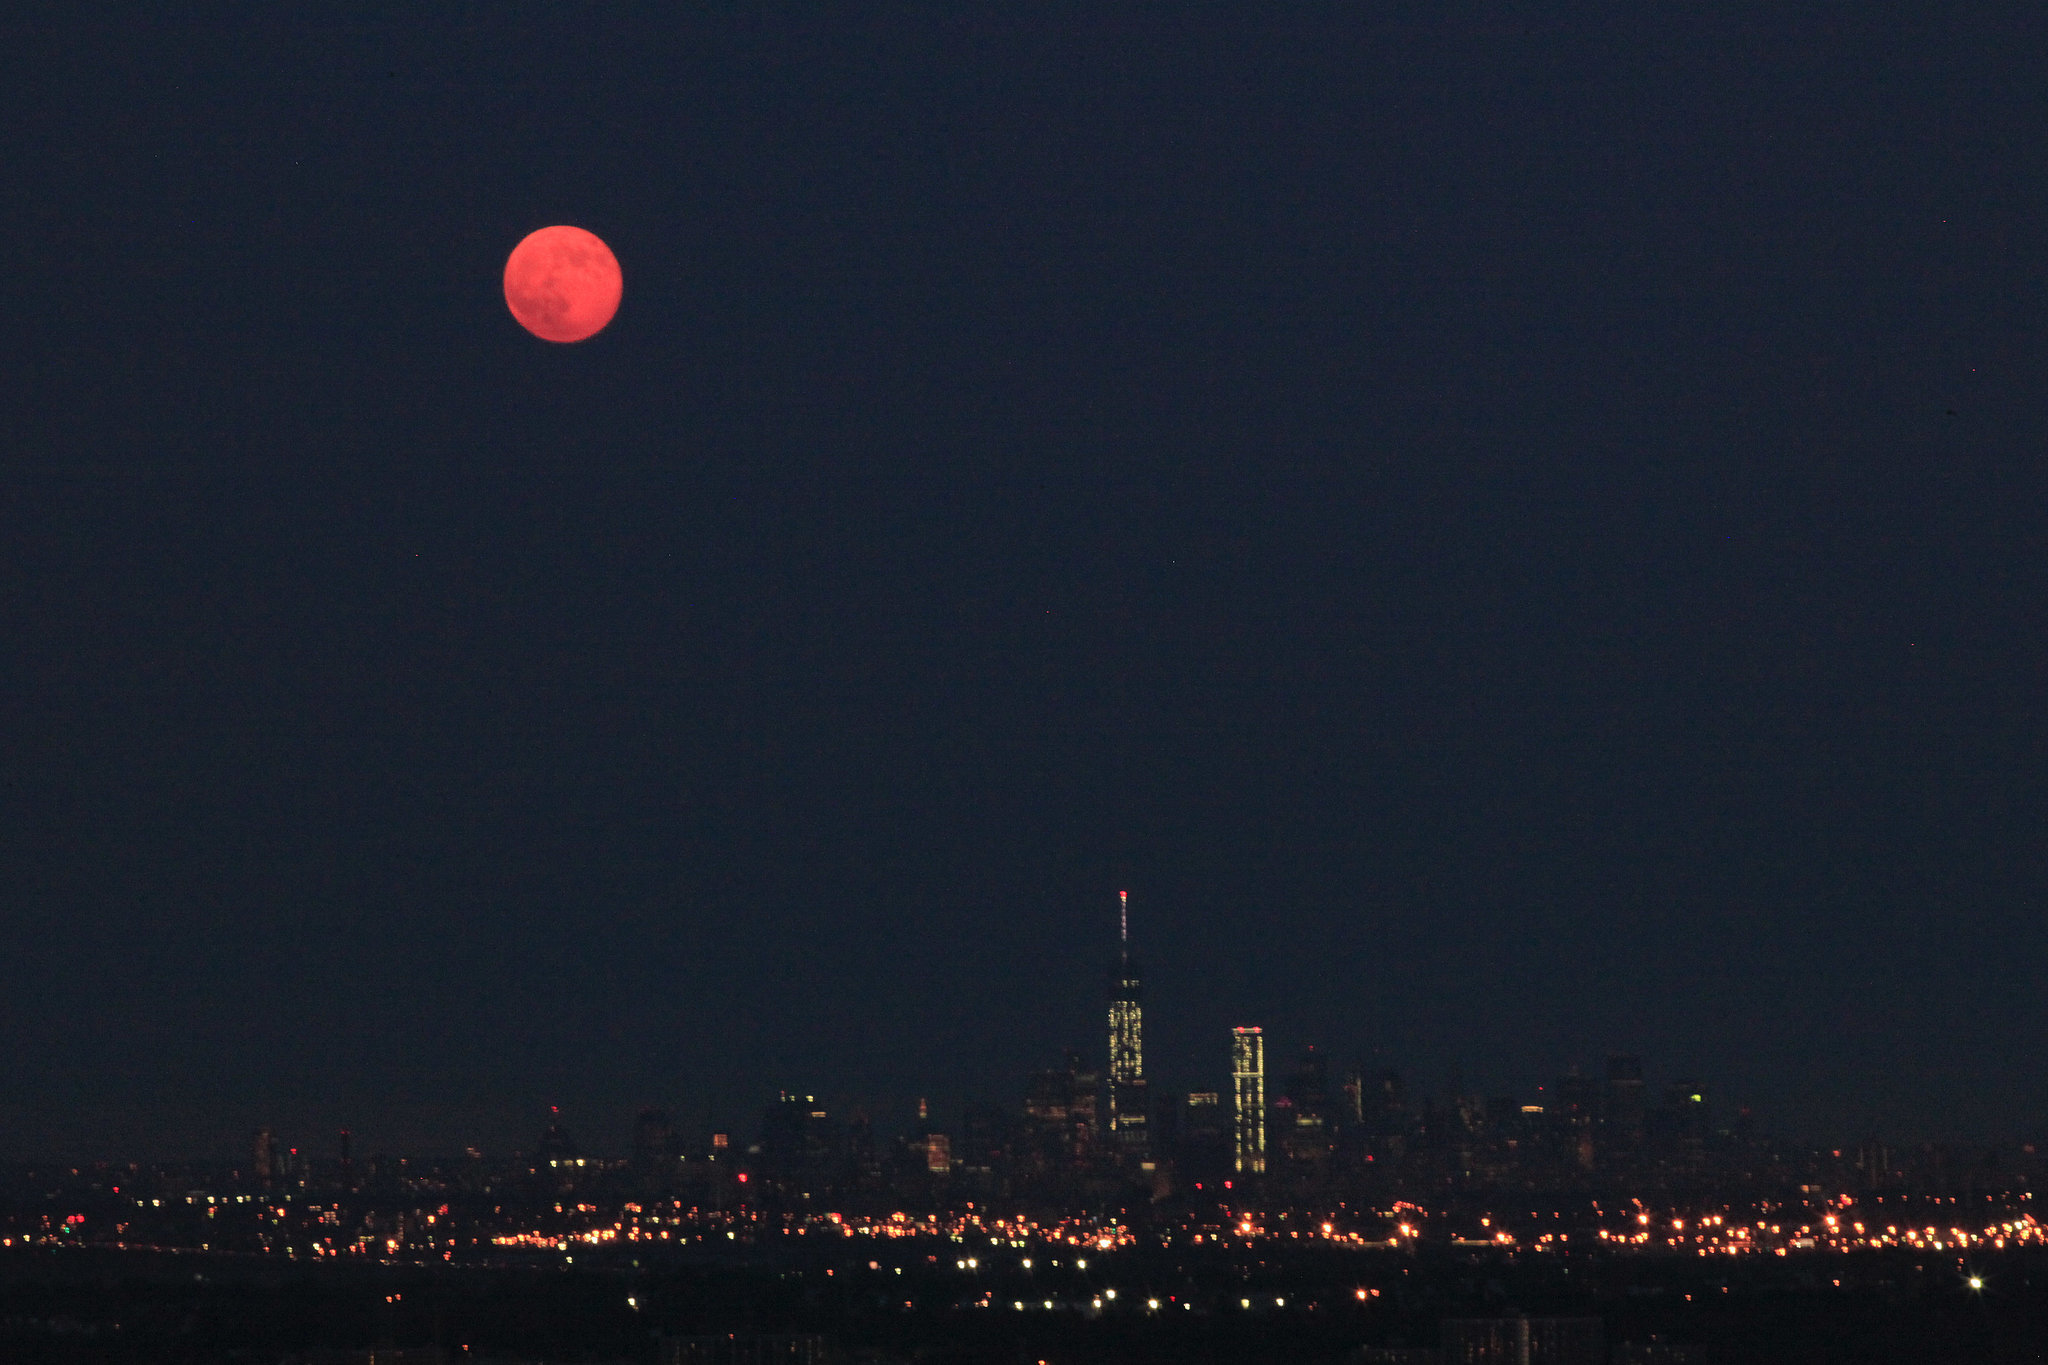 The Summer's first supermoon rises over New York City on July 12.